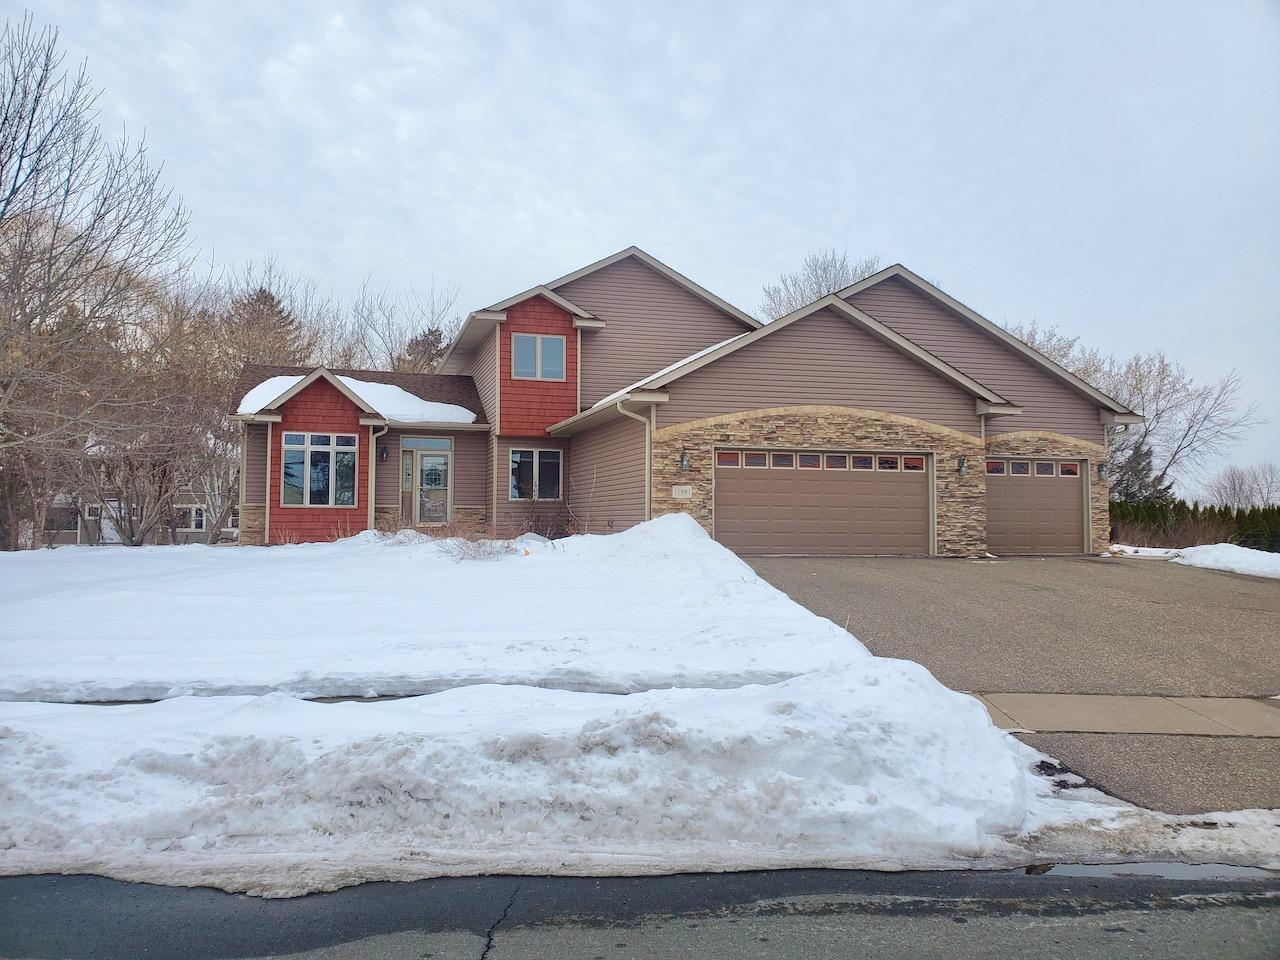 11981 N Meadow Curve Property Photo - Lindstrom, MN real estate listing